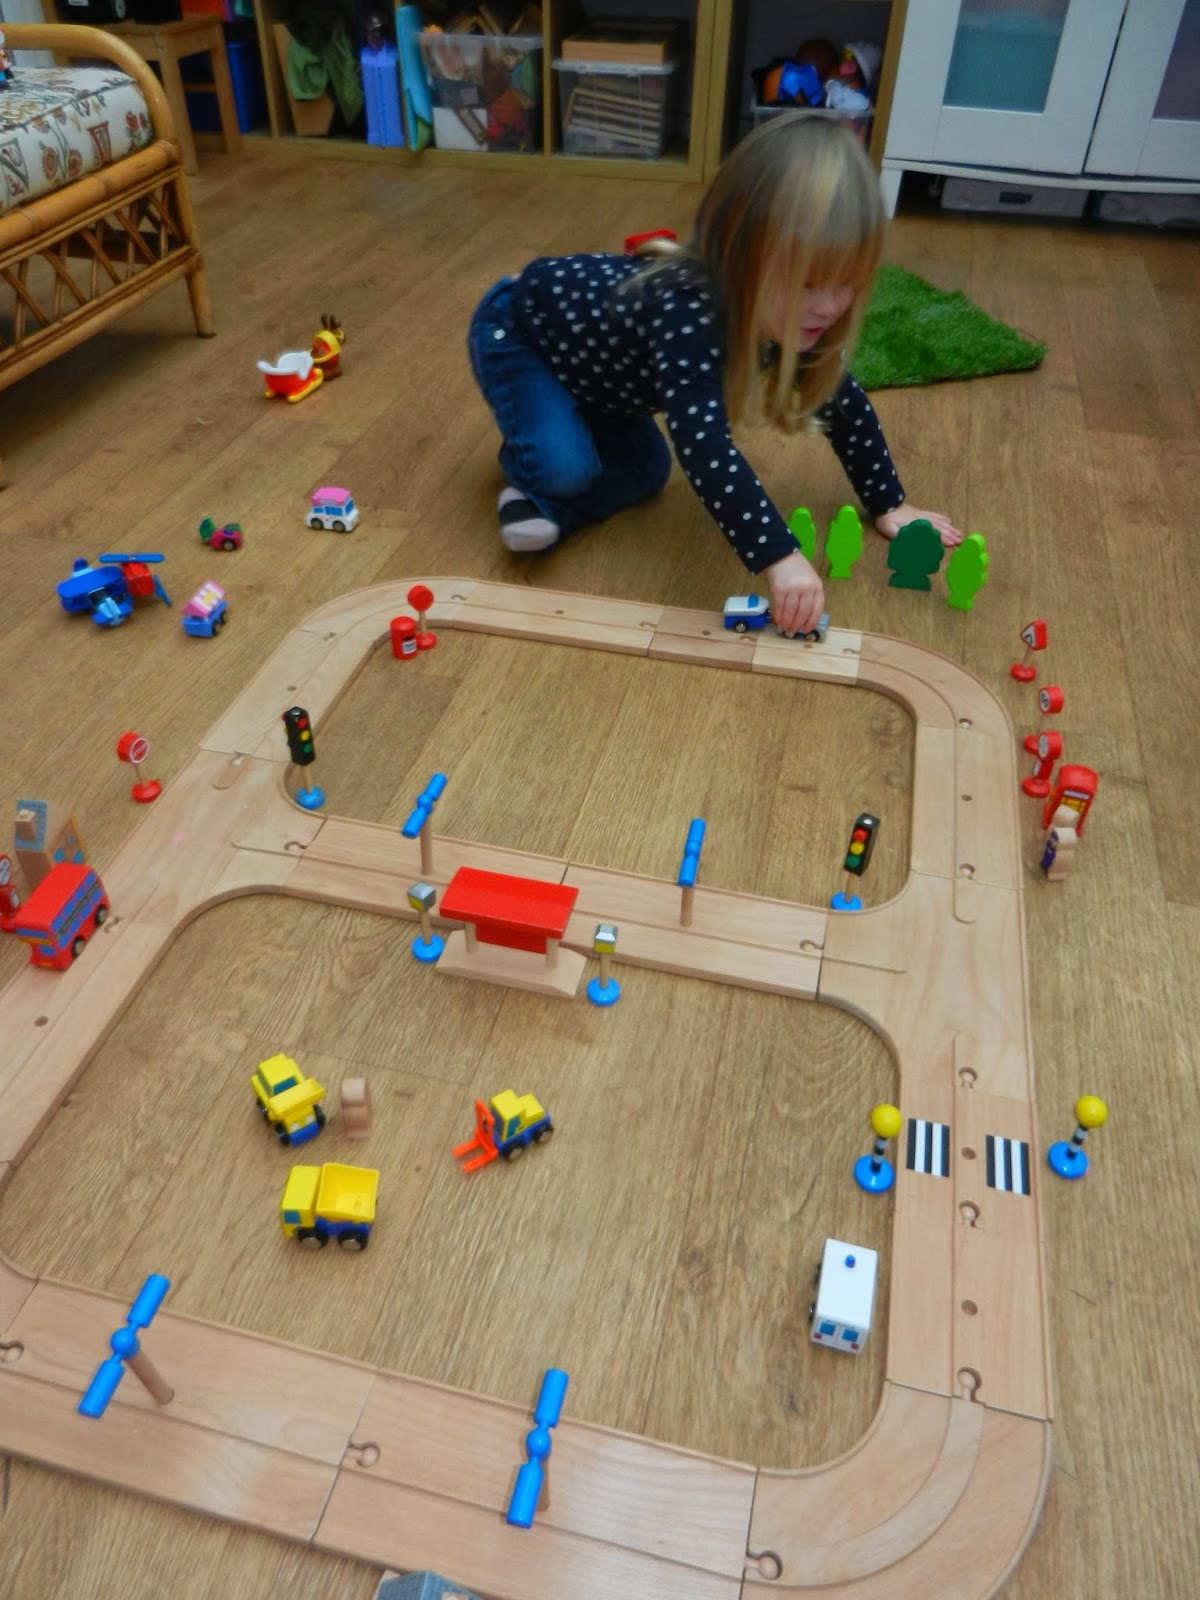 Teaching Road Safety Through Play